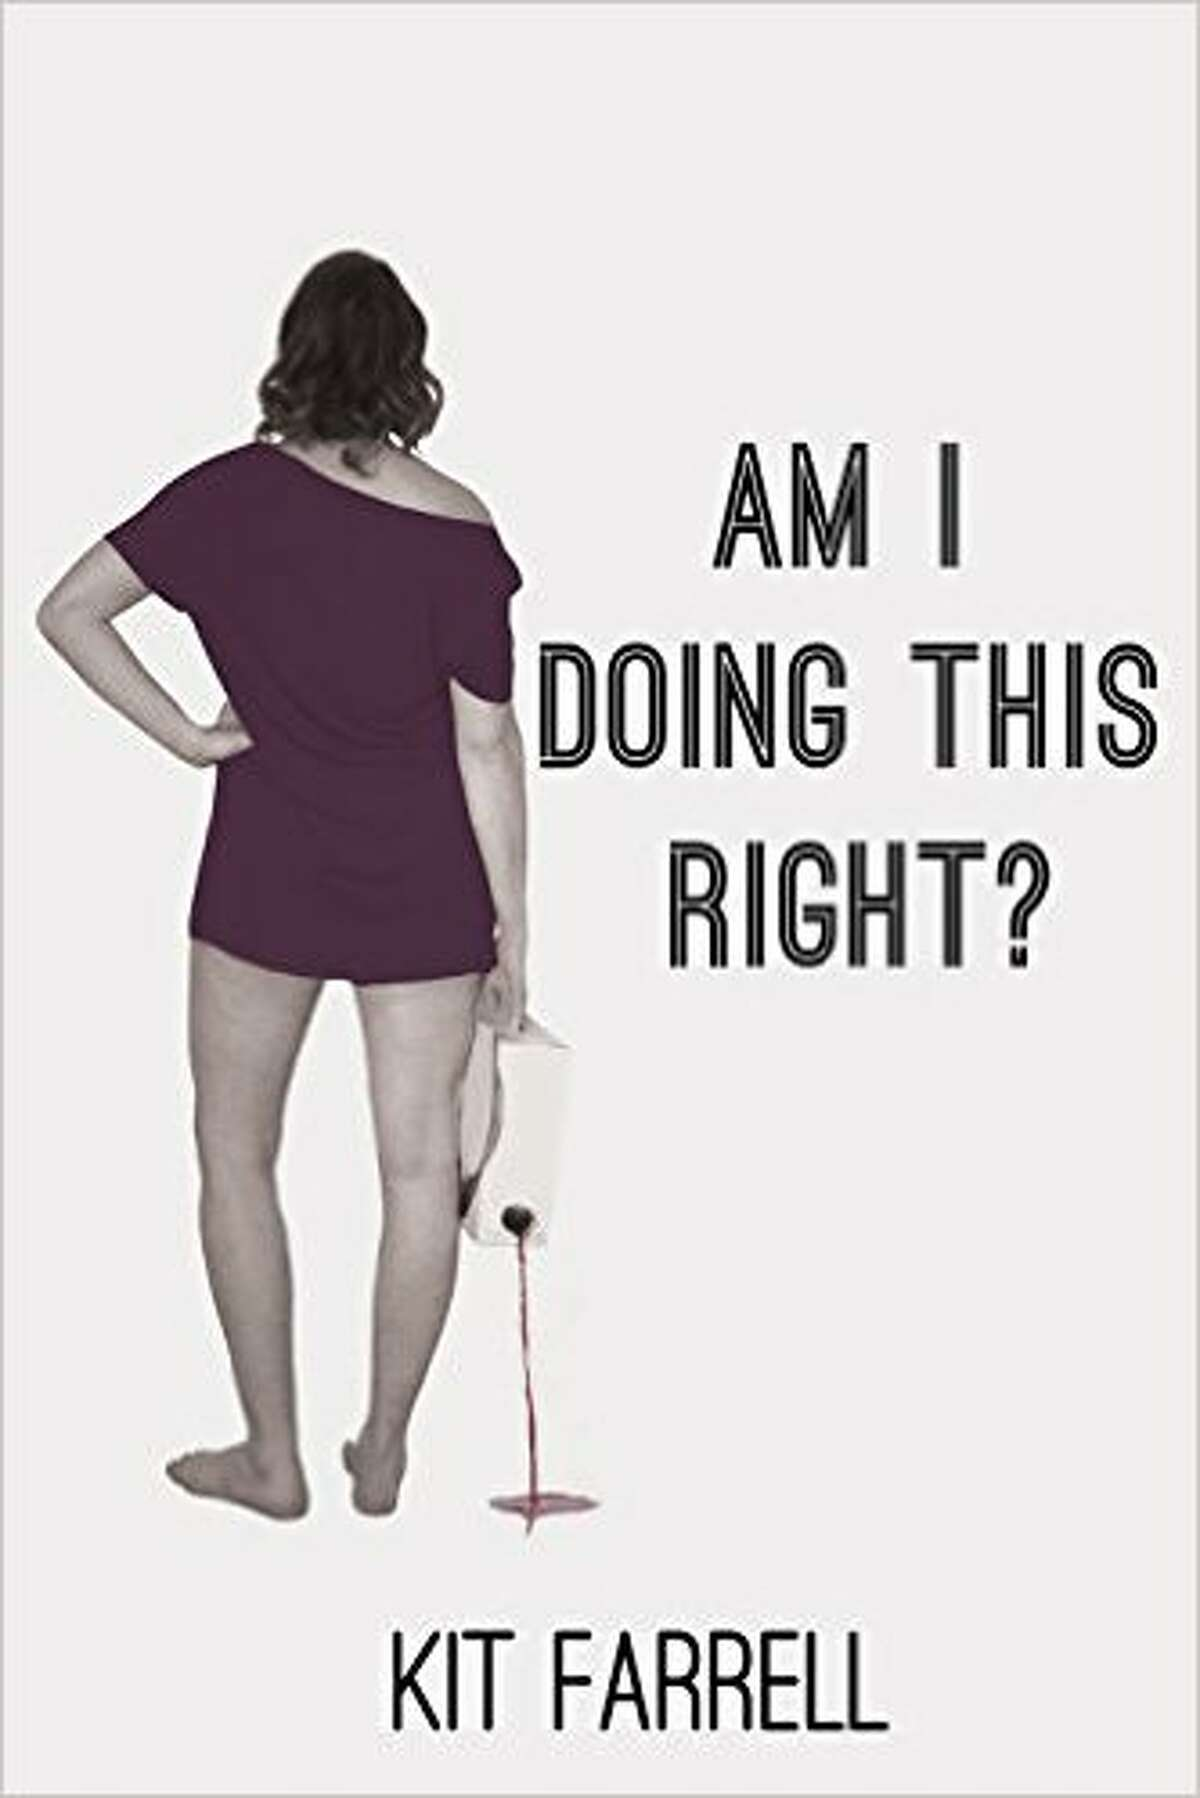 """""""Am I Doing This Right?,"""" by Kit Farrell (2015, Kit Farrell).  Recent college graduate Quinn returns home to live with her parents in this novel about one young woman's efforts to jump-start her adult life. Farrell, who was born and raised in Wynantskill, writes in the self-published novel, """"They don't tell you that this was what happened after college. Instead they fill our heads with big ideas and dreams and never bother to check back and tell us that our college diploma doesn't automatically come with a job offer and apartment lease taped to the back."""""""